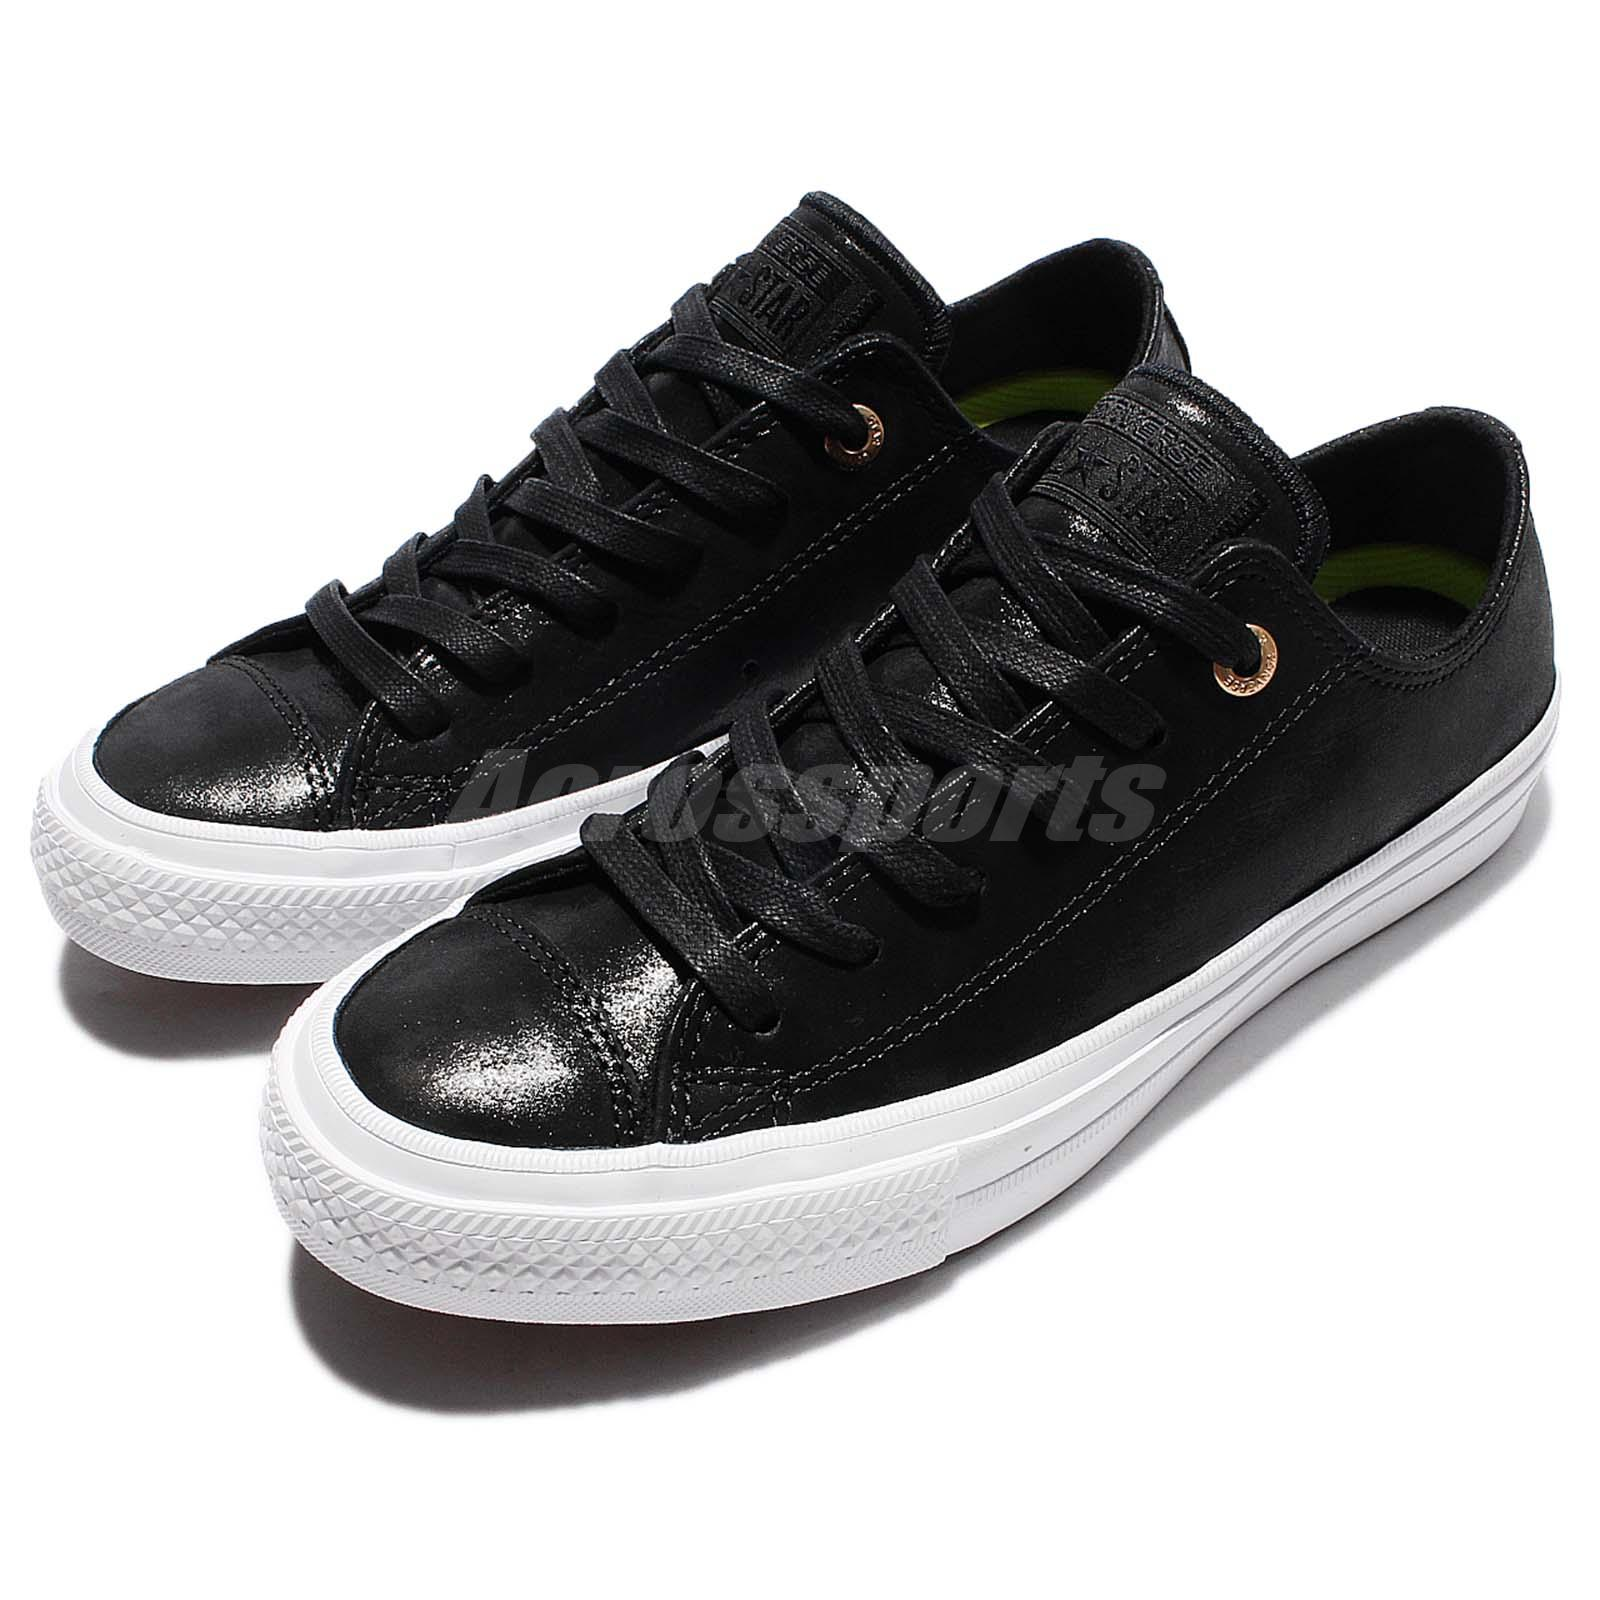 74d483e5e720a1 Details about Converse Chuck Taylor All Star II 2 Craft Leather Blac White  Women Shoes 555958C